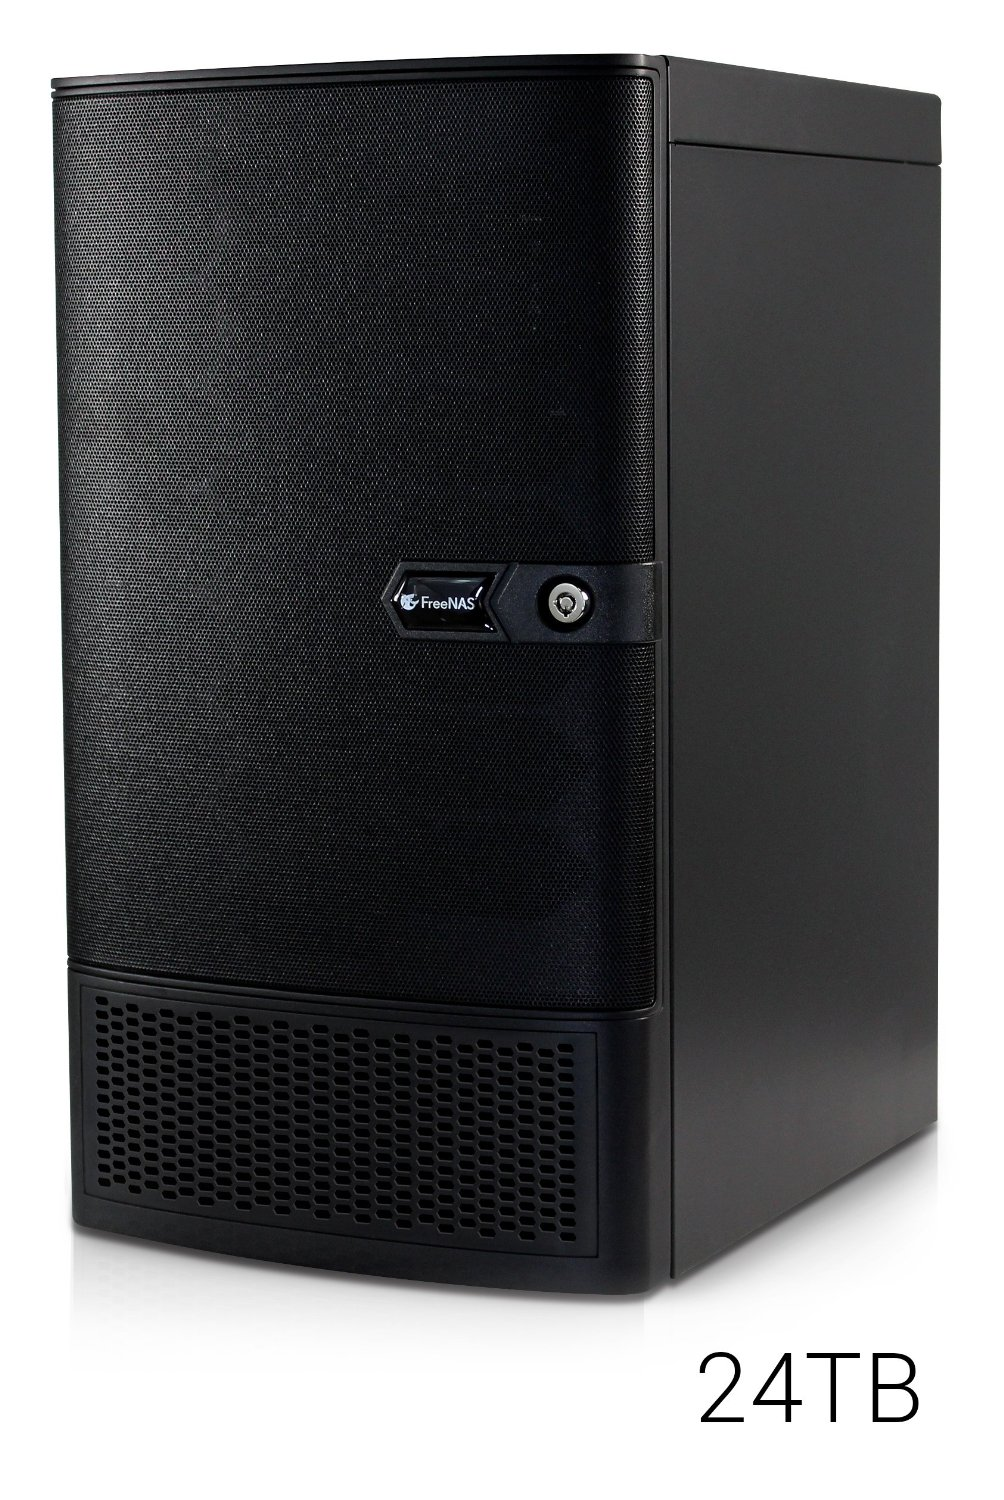 FreeNAS Mini XL (24TB) - Network Attached Storage